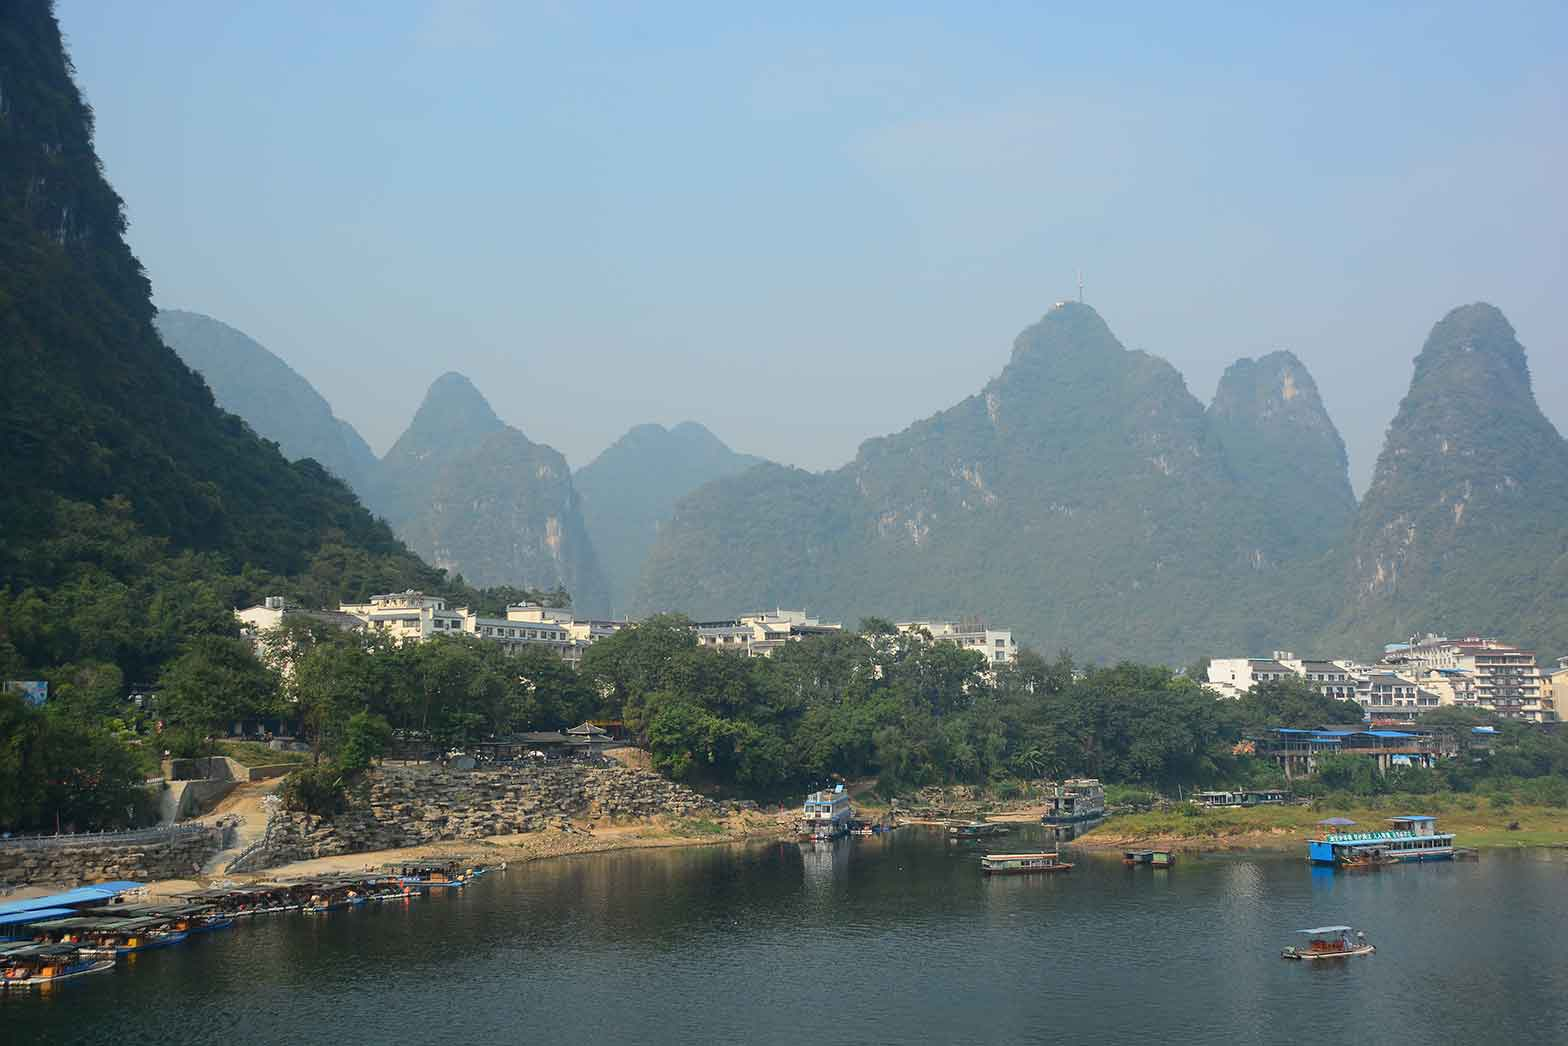 The banks of the Yulong River